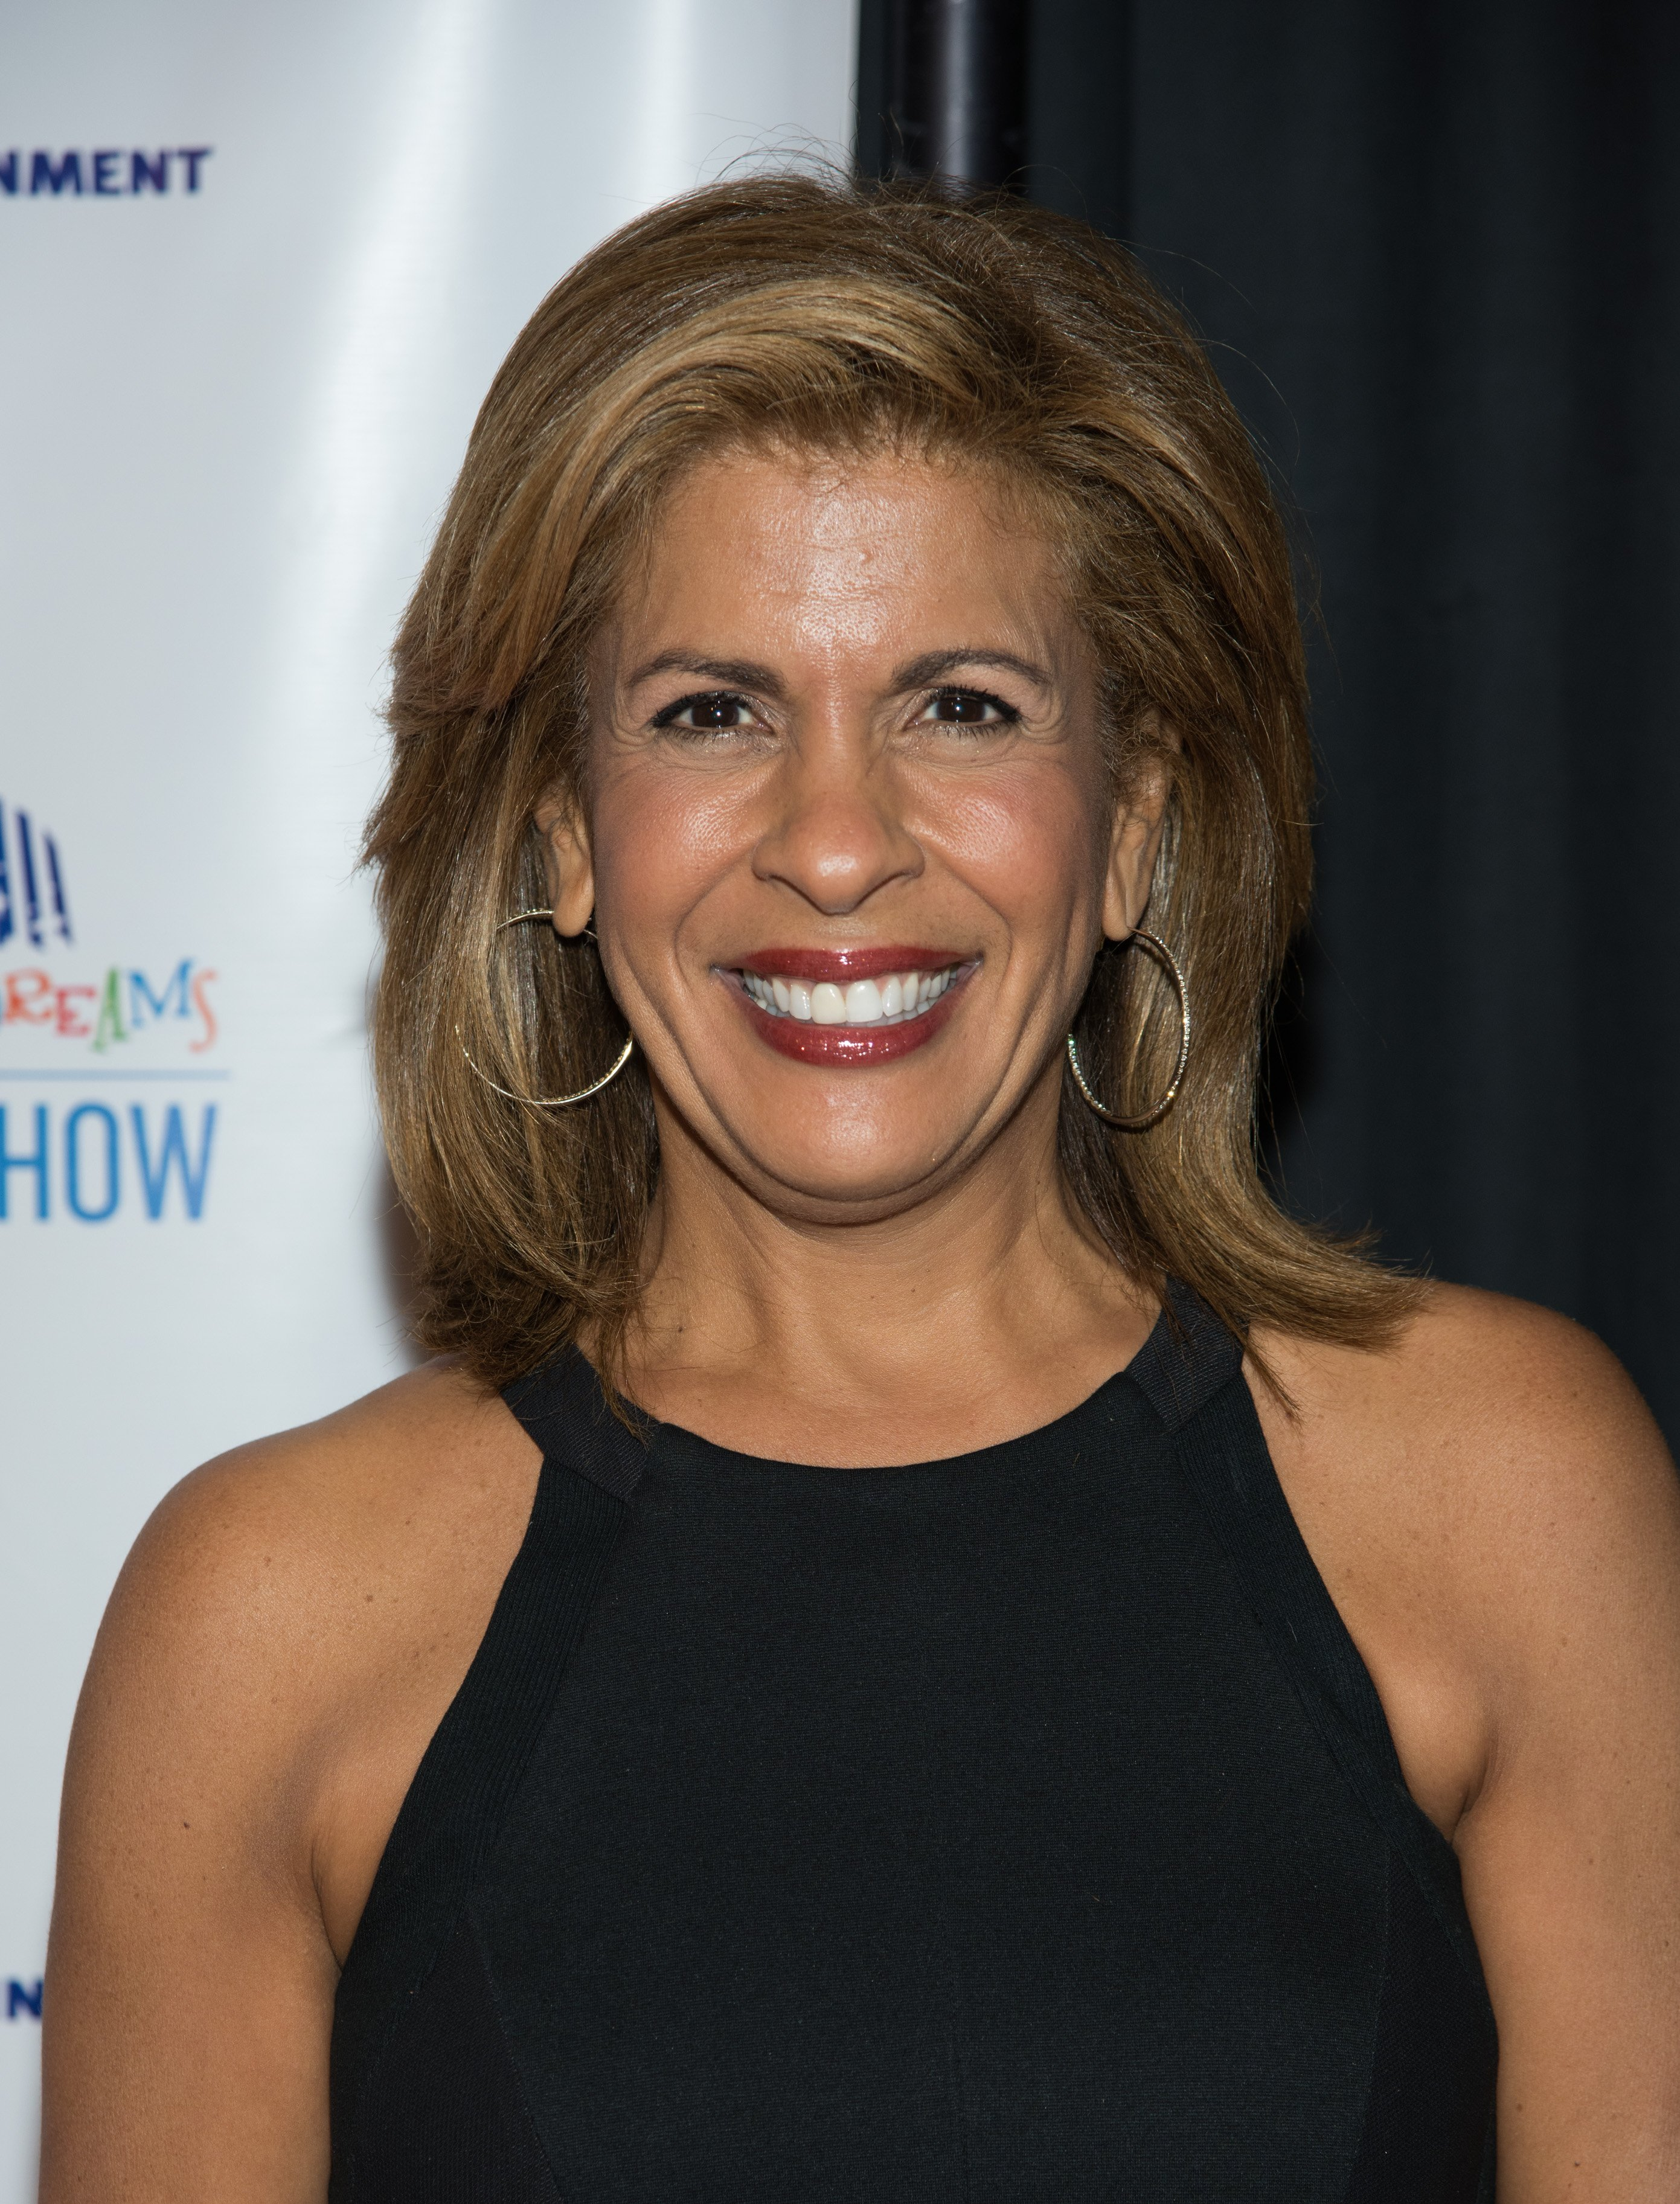 Hoda Kotb Image Source: Getty Images.